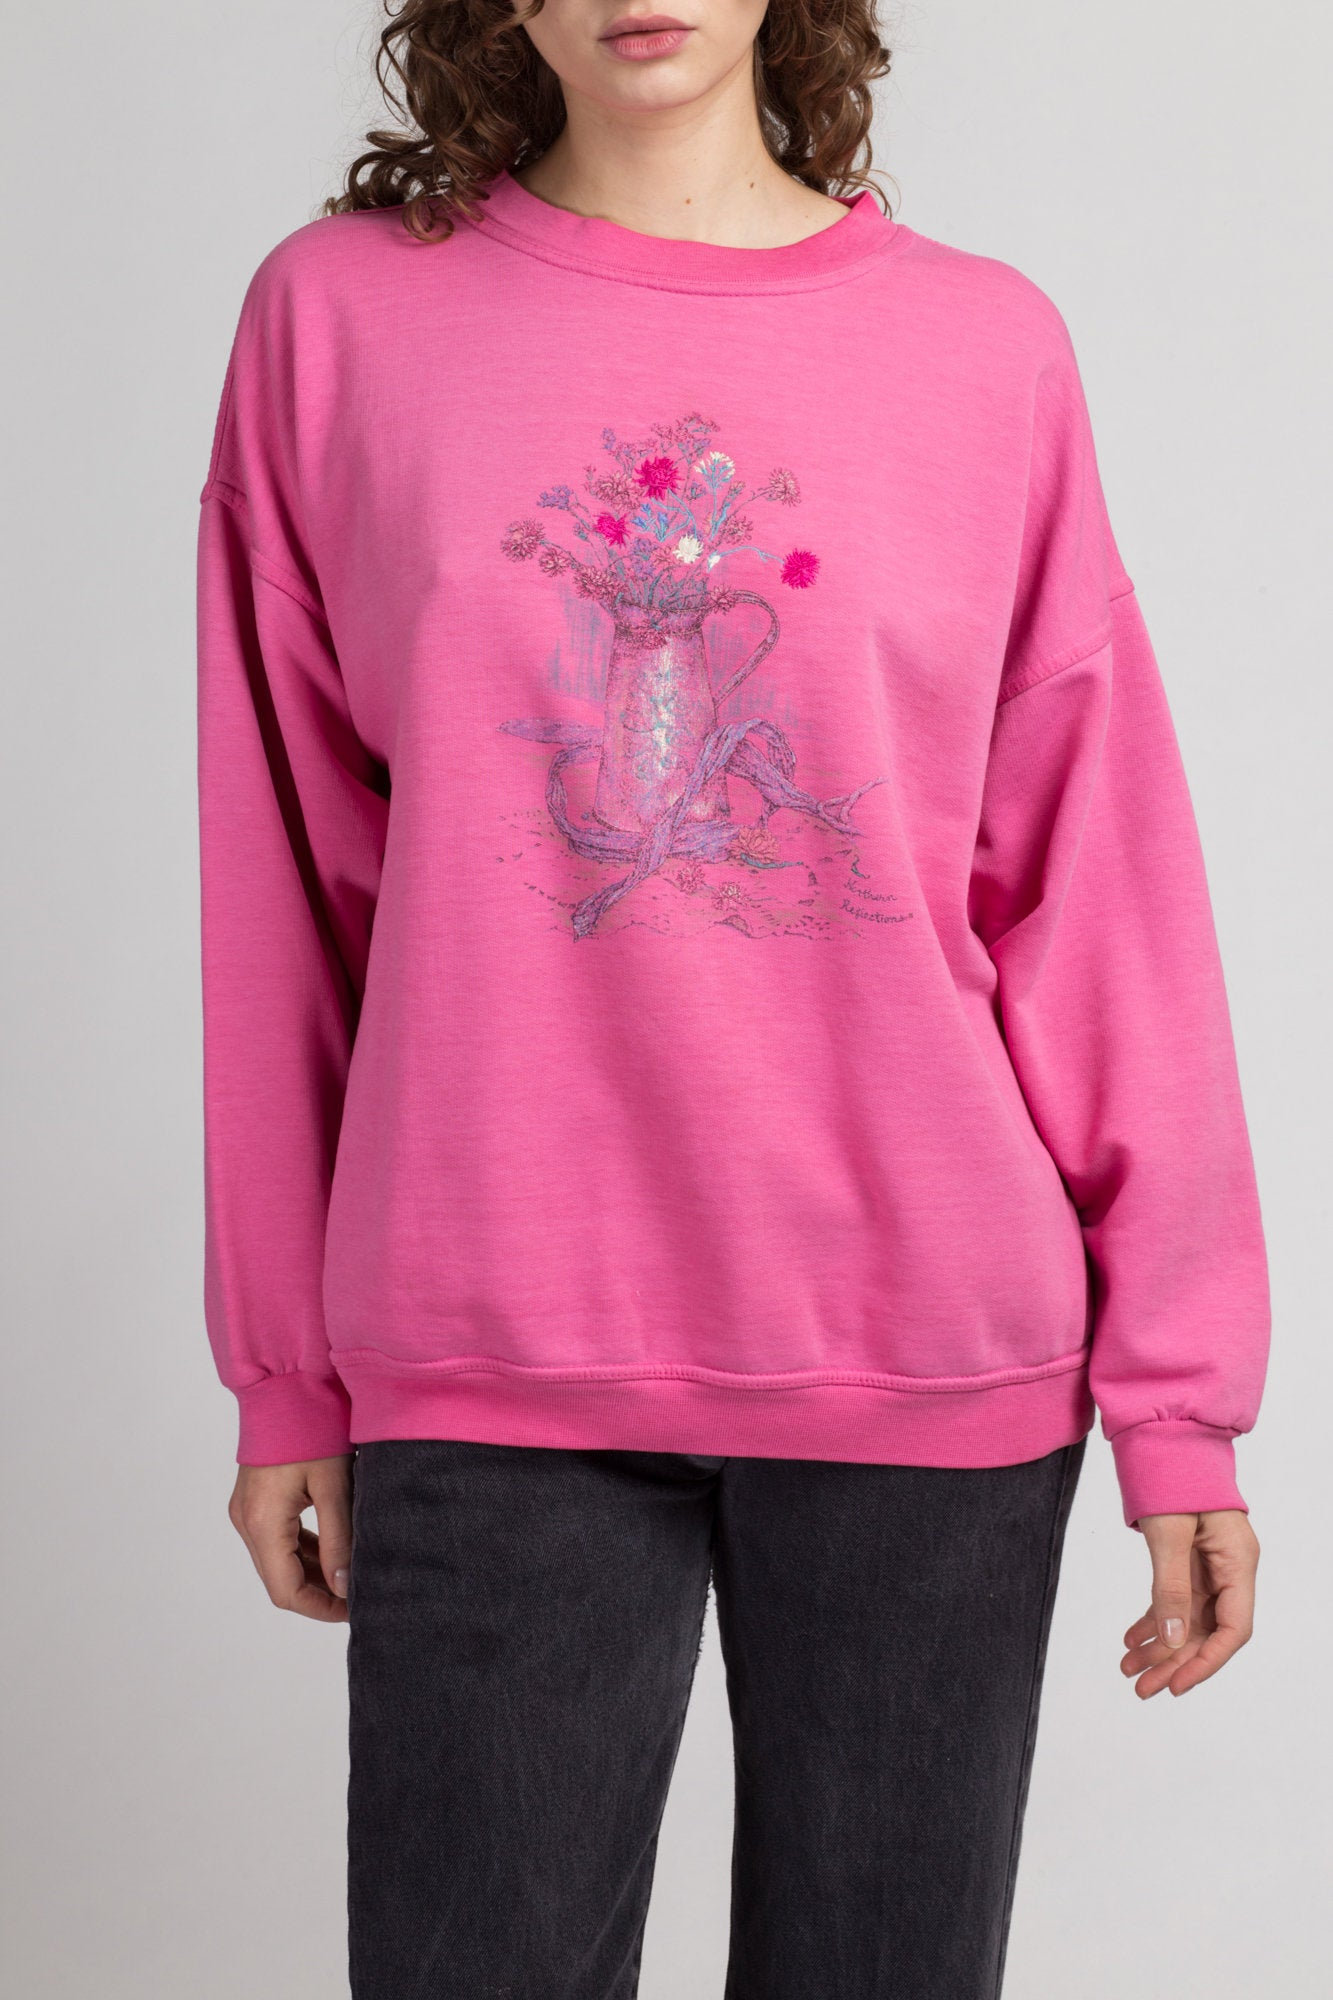 90s Pink Vase & Flowers Sweatshirt - Extra Large | Vintage Floral Long Sleeve Graphic Top